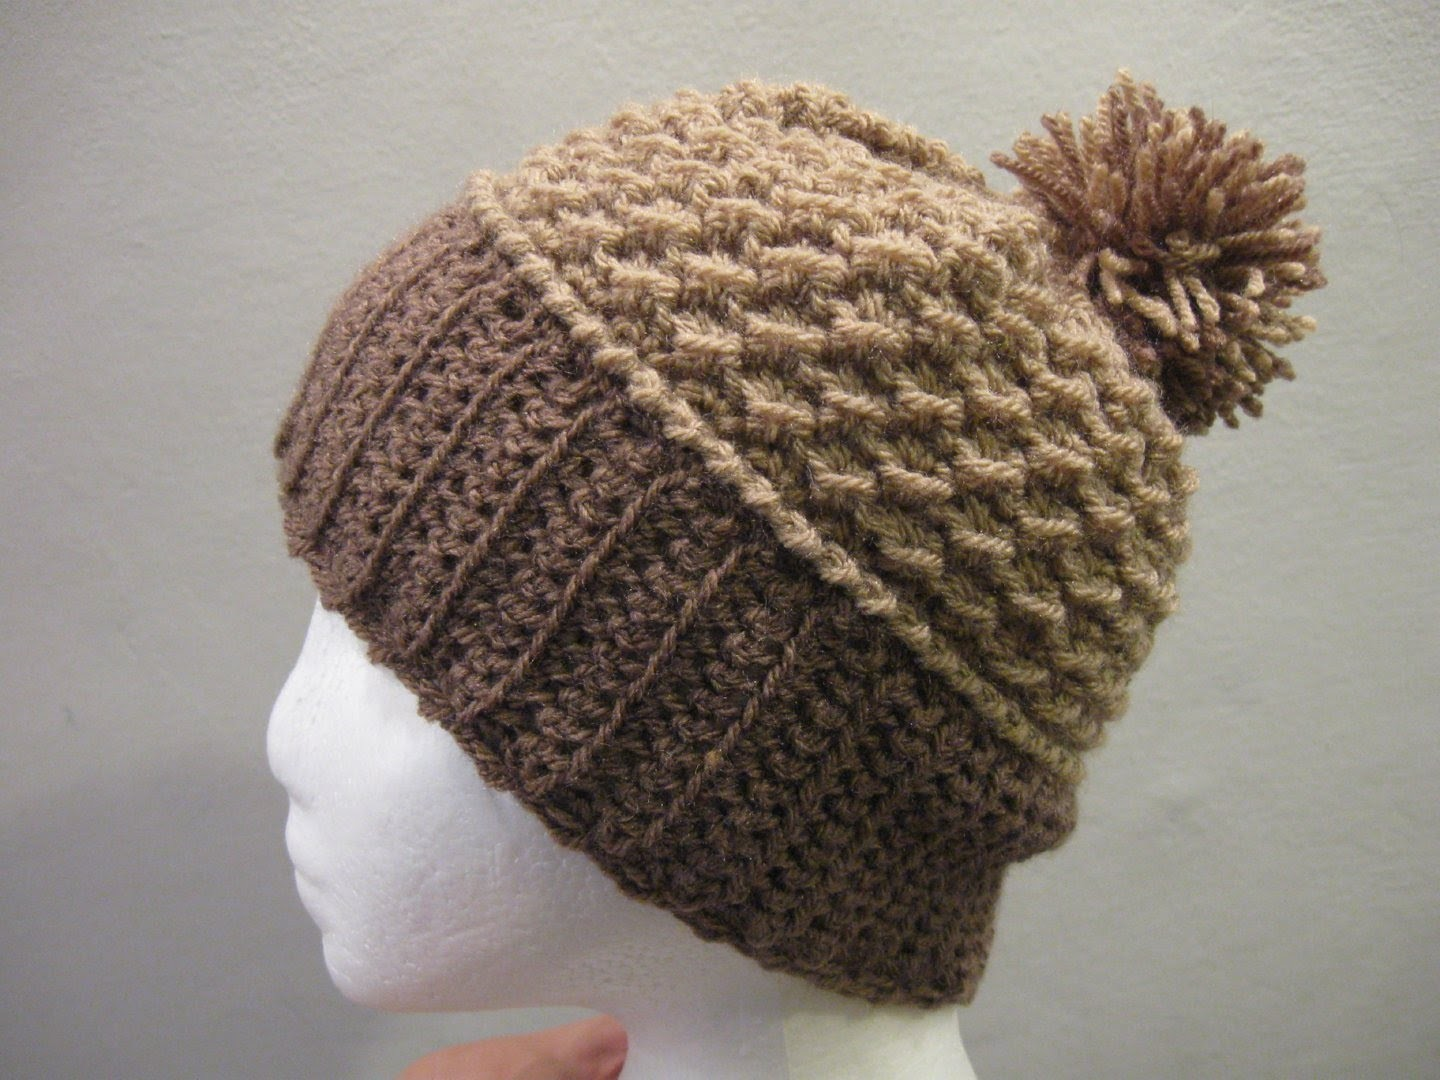 Crochet Moss Stitch Beanie - Left Handed Version - Crochet tutorial